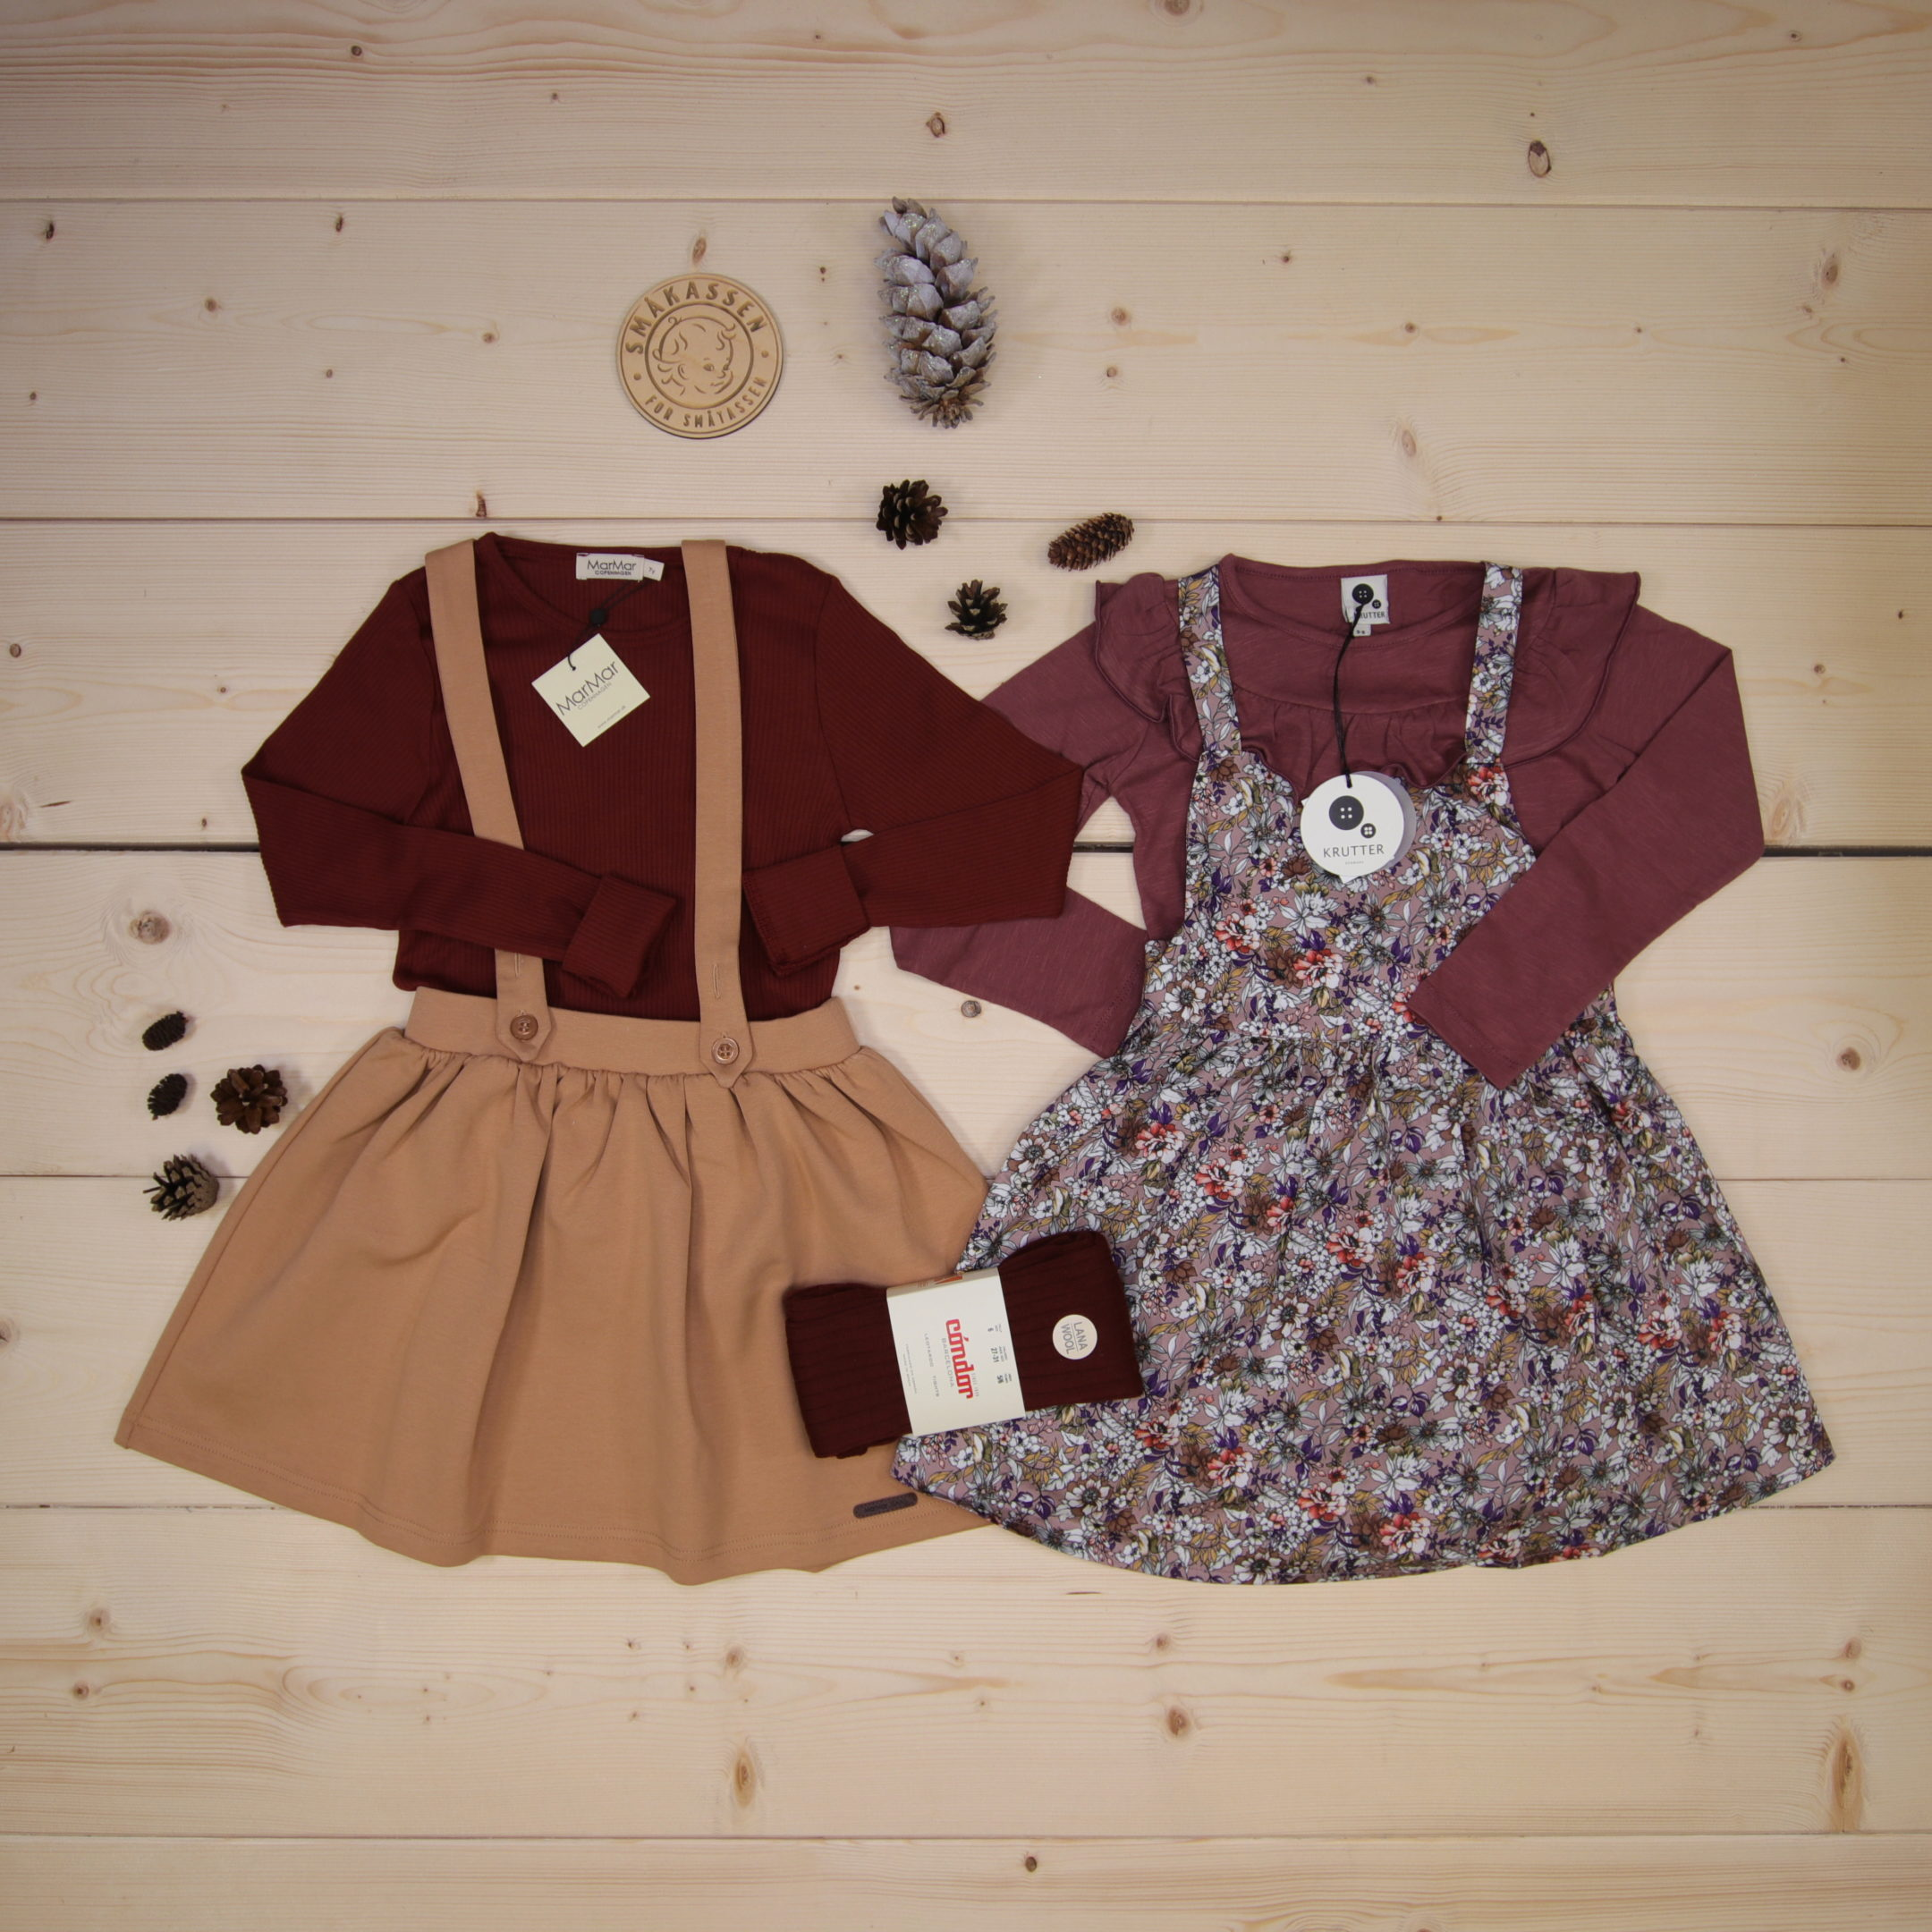 This is Småkassen that we prepared for a girl in the style cute in size 116.